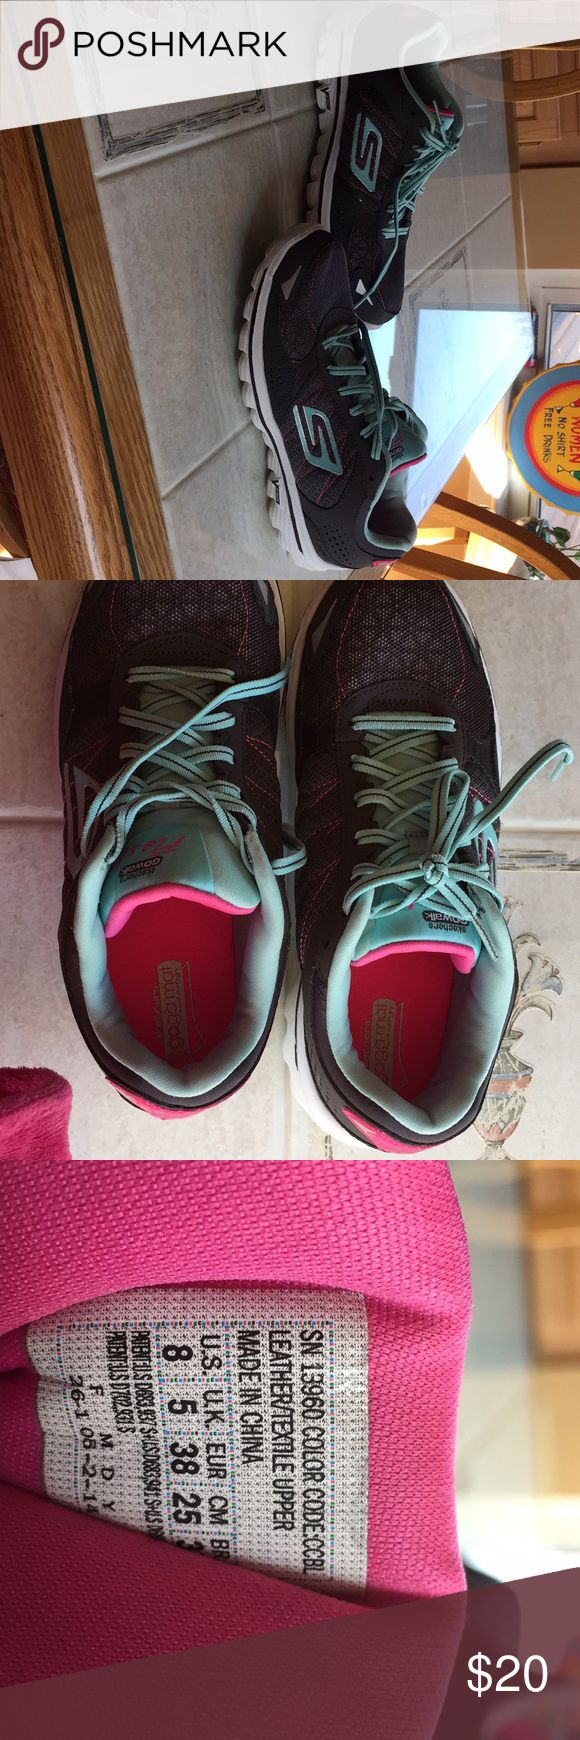 Sketchers sneakers!! Women's Skechers  Gogo mat sneakers. Size 8. Only worn once. Excellent used condition. Gray with bluish green trim and laces. skechers Shoes Sneakers